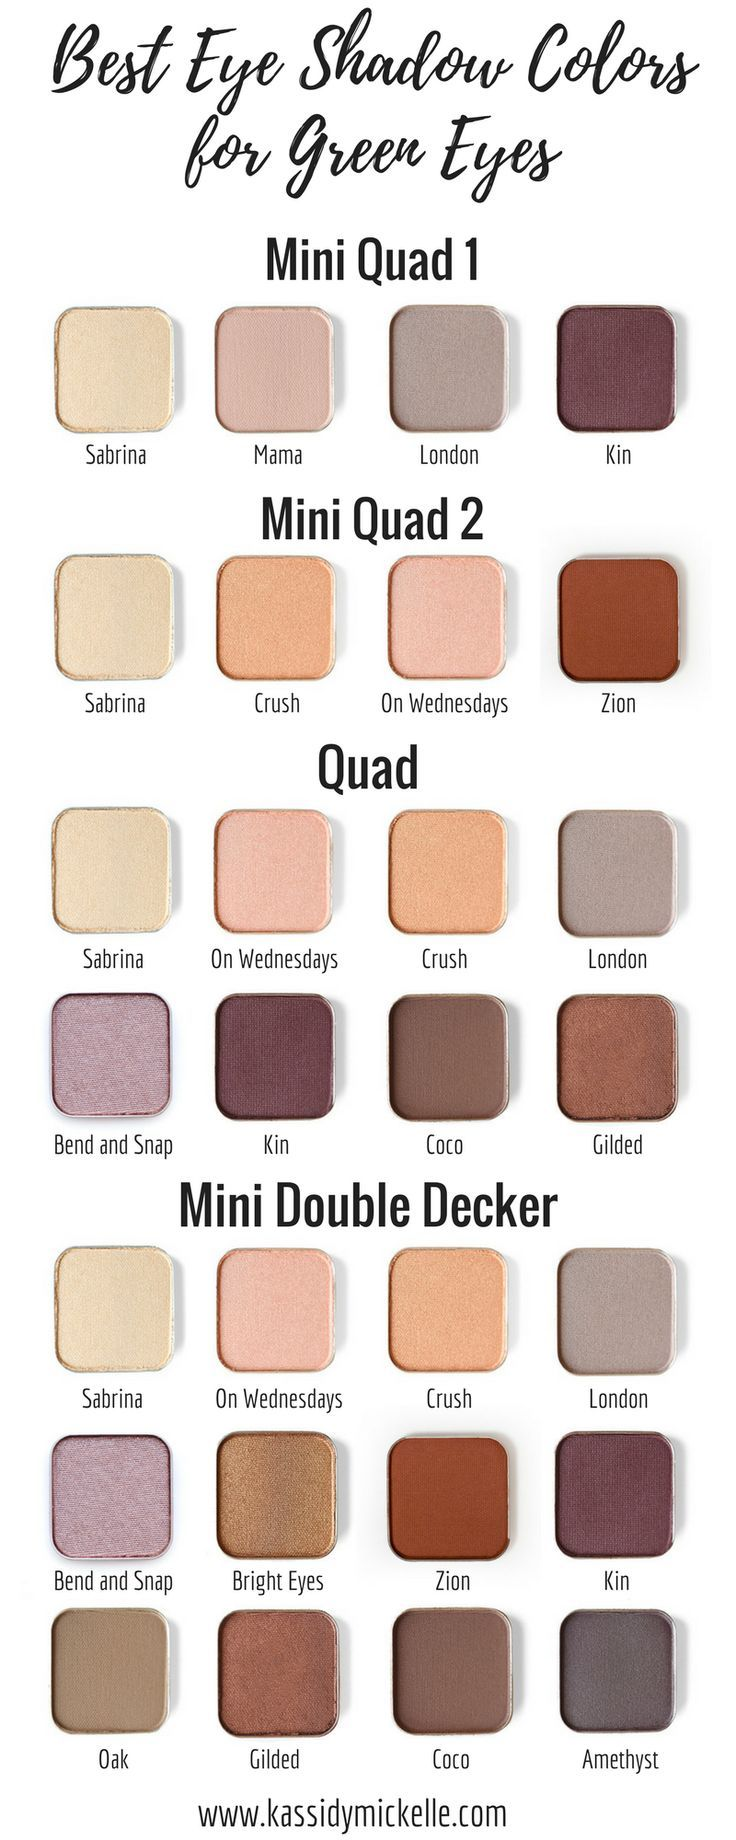 the best eyeshadow colors for green eyes | hair and make up